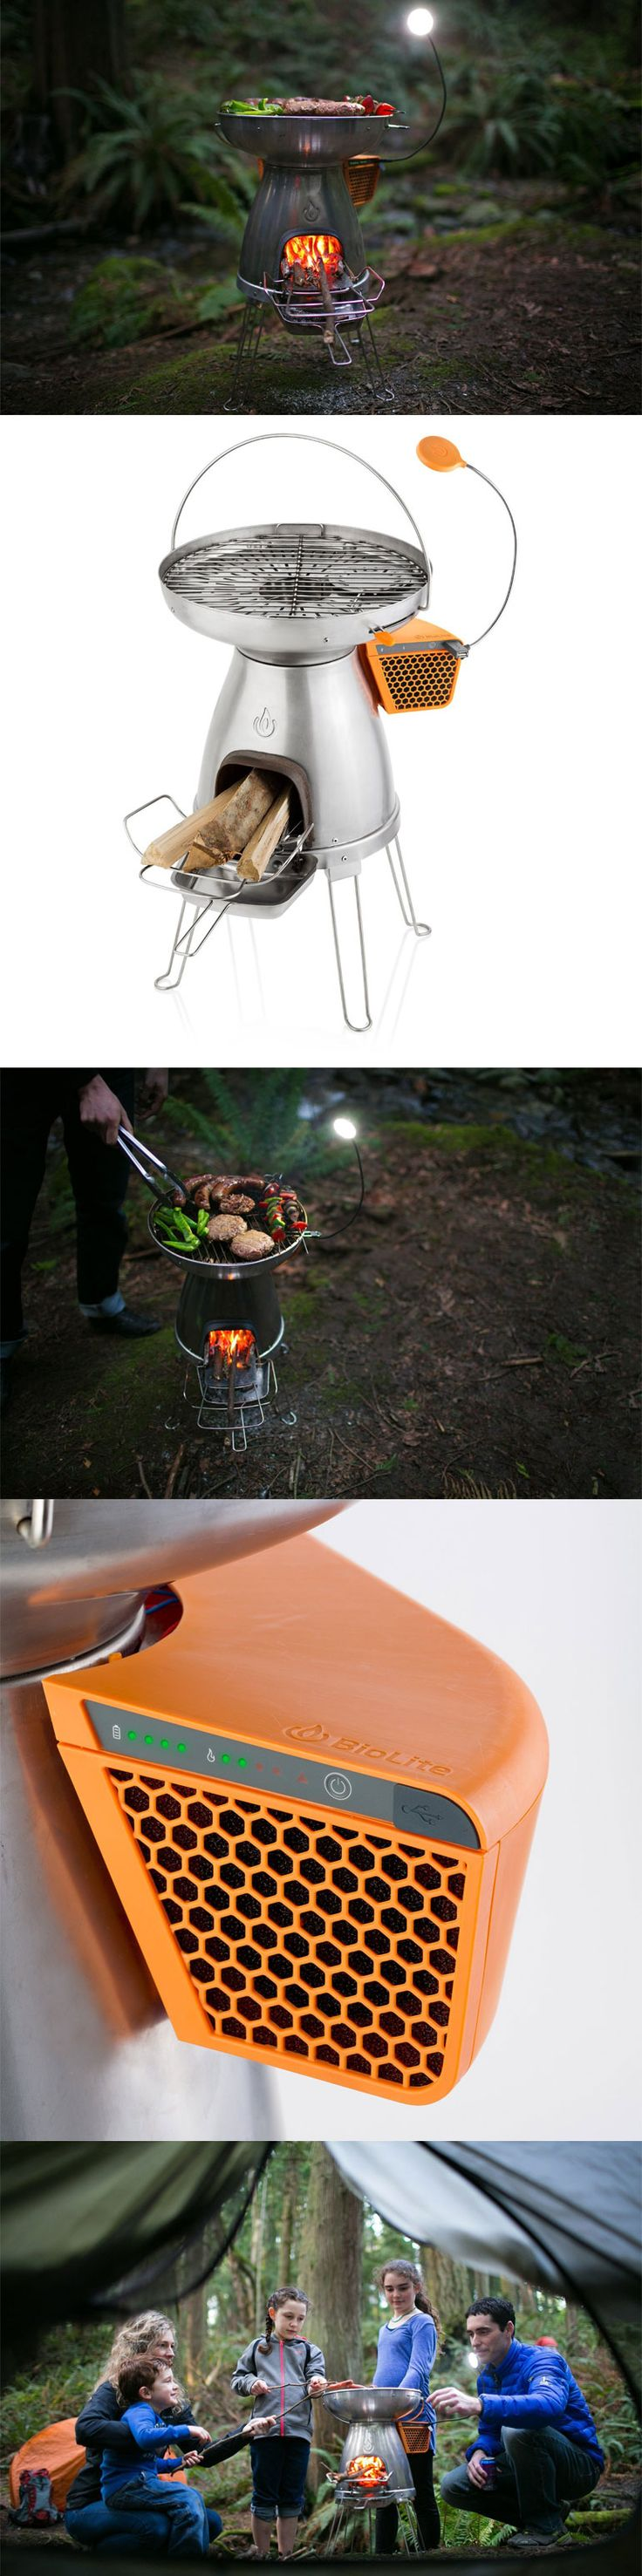 180 Best Camping Stuff Images On Pinterest Caravan Biolite Wiring Diagram Basecamp Burn Things To Charge Your Phone The Is An Innovative Off Grid Energy Solution That Makes Dinner At Same Time